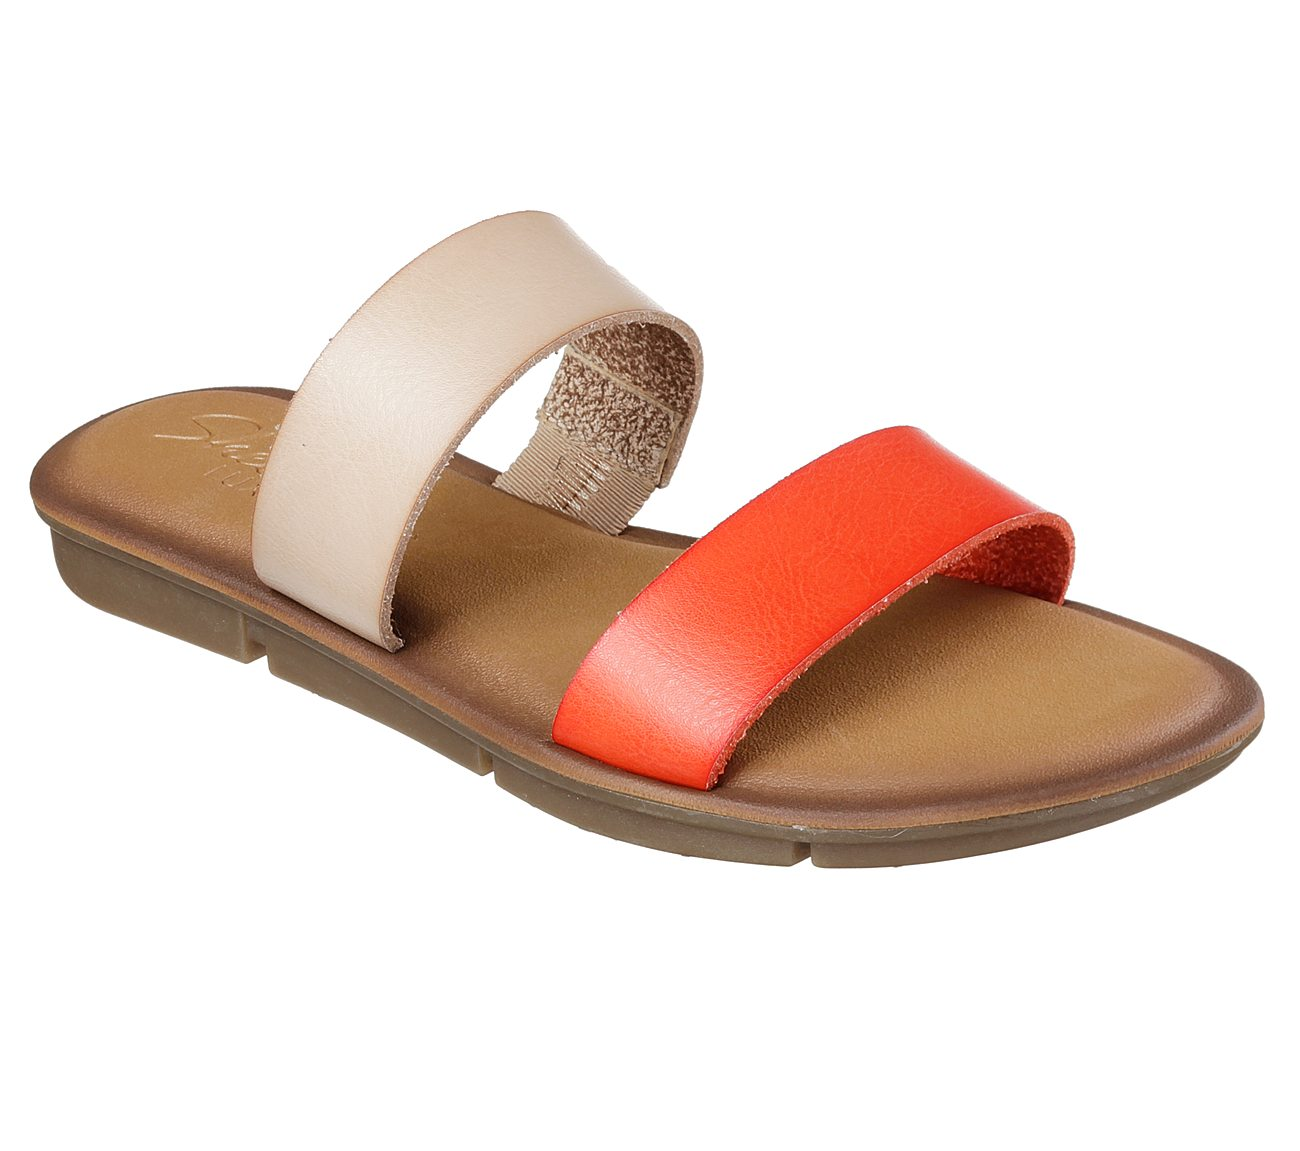 Buy Skechers Indulge 2 Horizons Slide Sandals Shoes Only